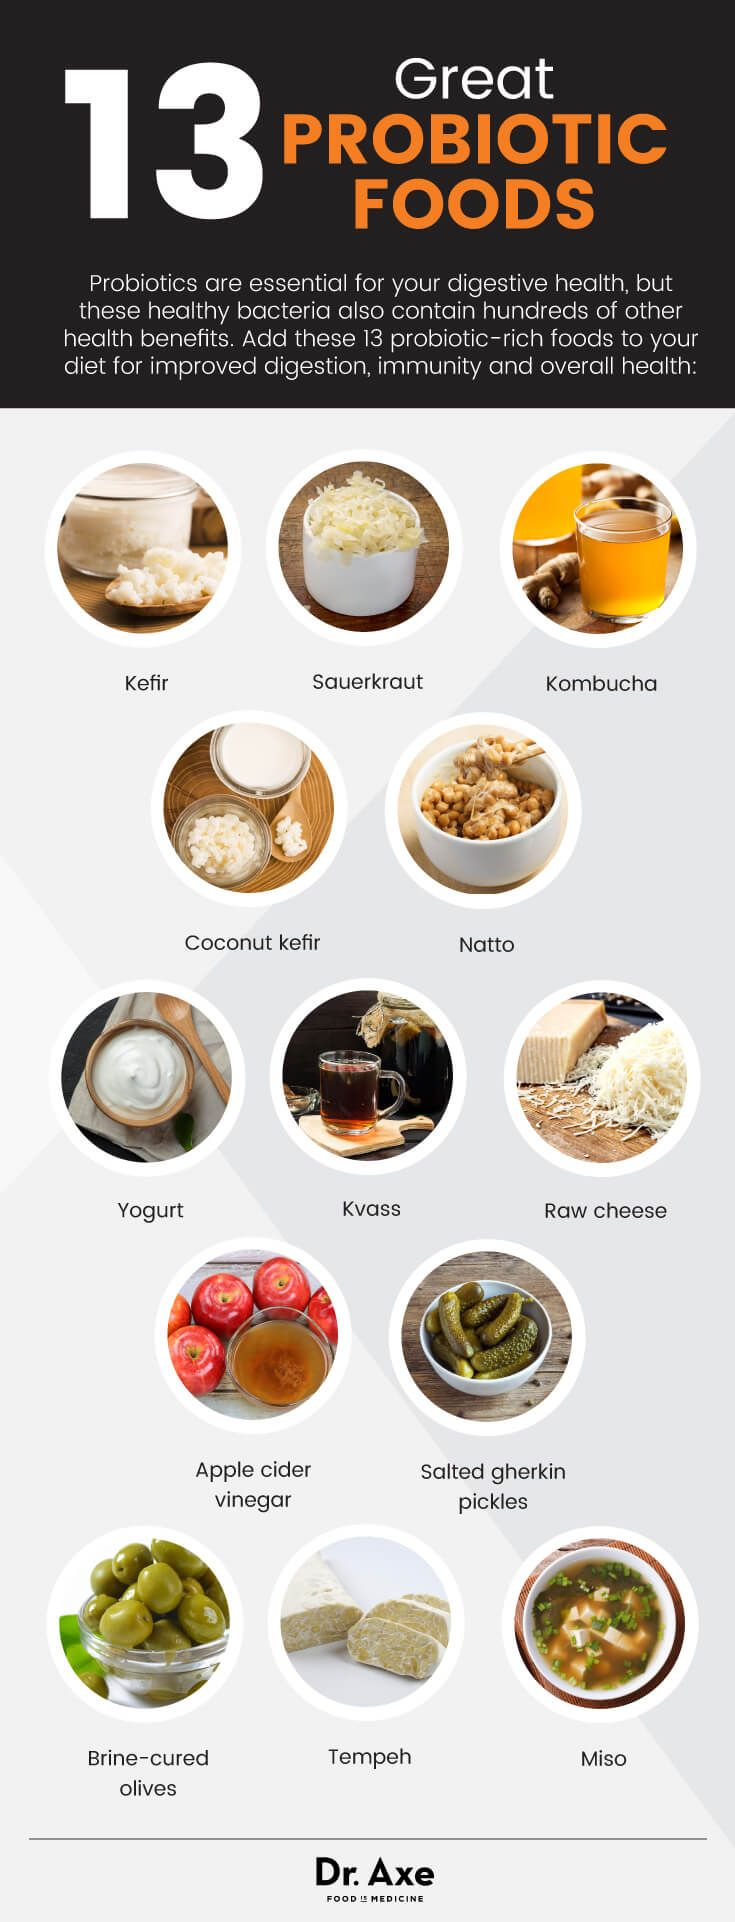 List Of Fermented Foods To Eat